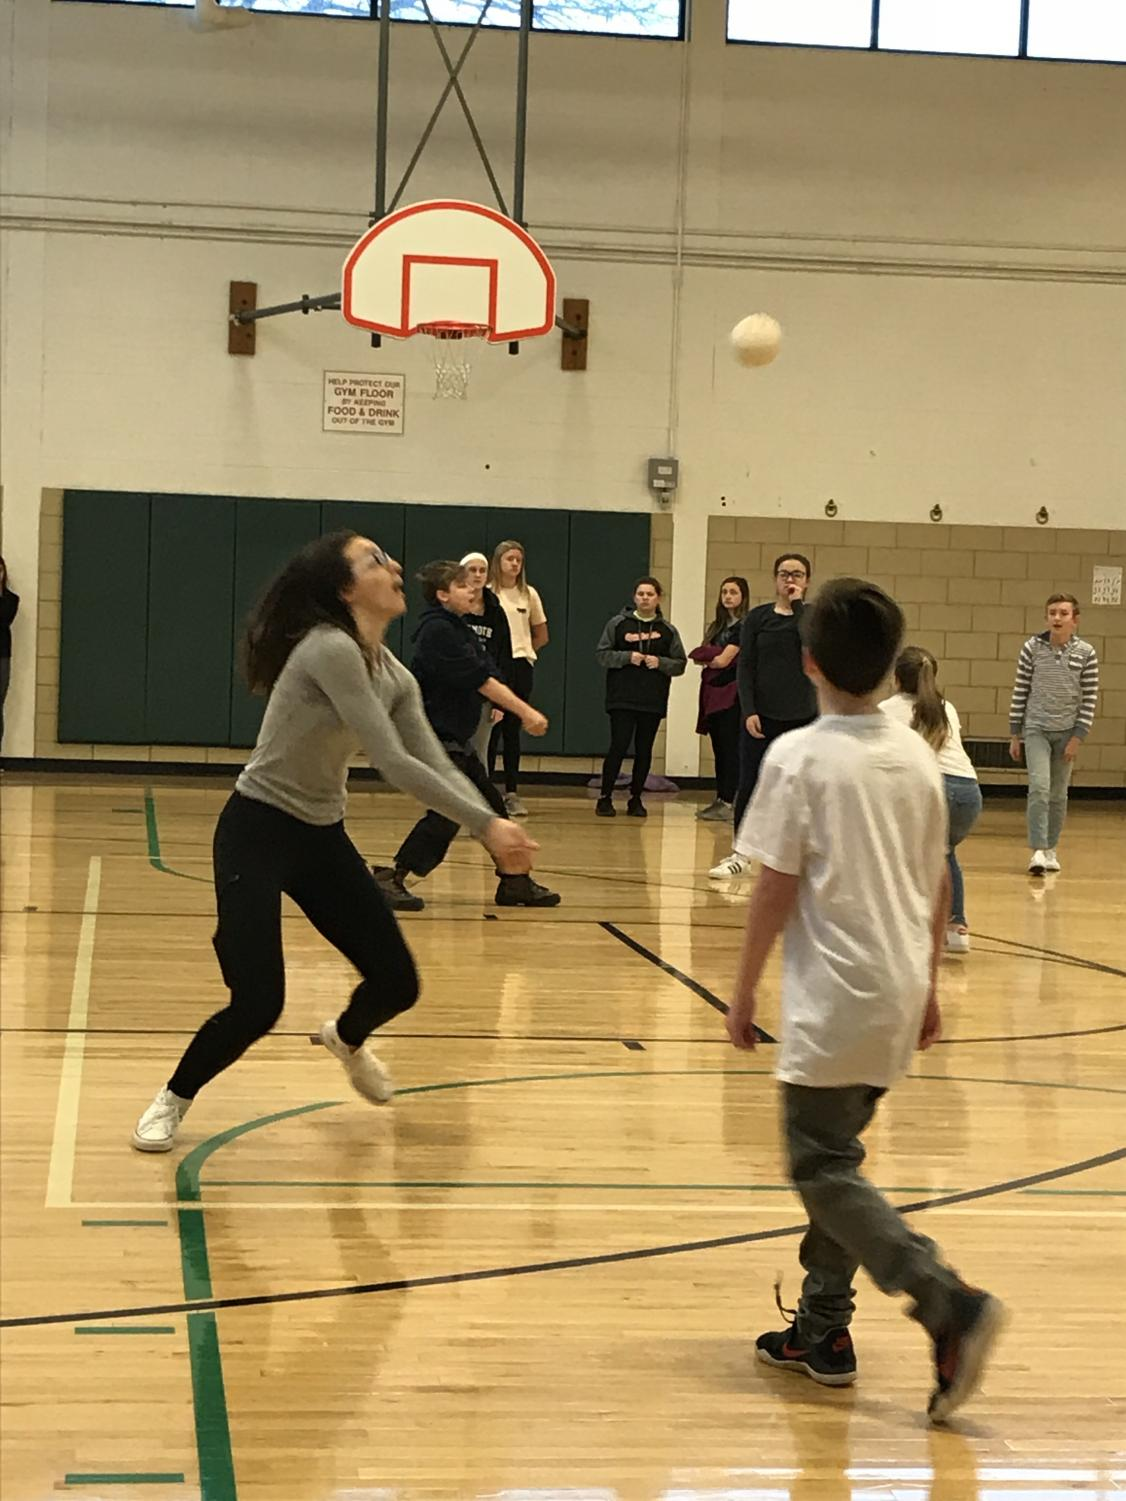 Seventh grader, Mira Vulaj hits the volleyball in a game during indoor recess.